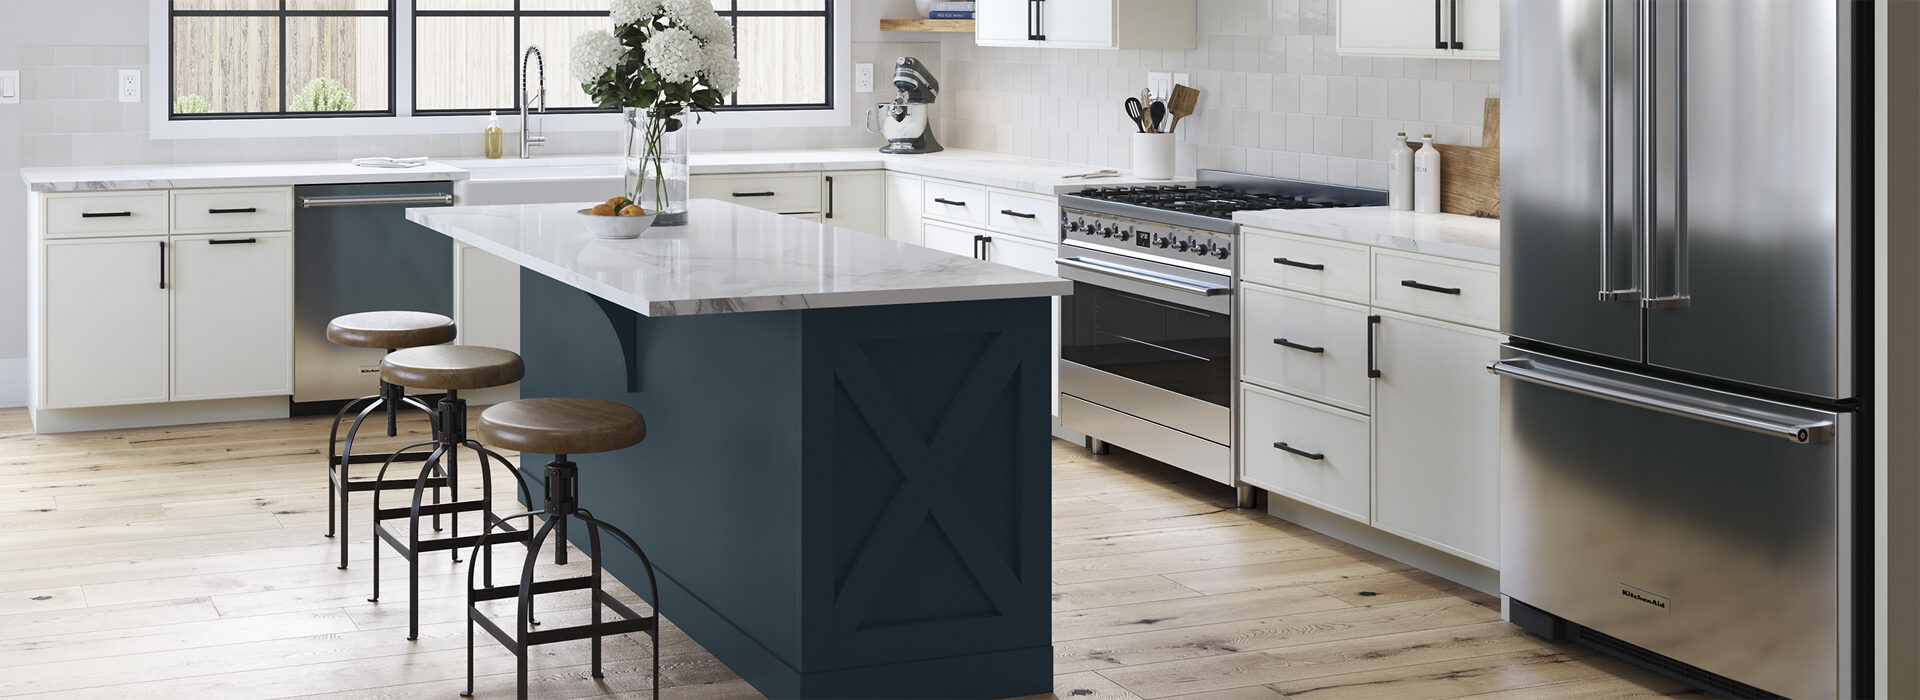 Kitchen Cabinets And Bathroom Vanities Showplace Cabinetry